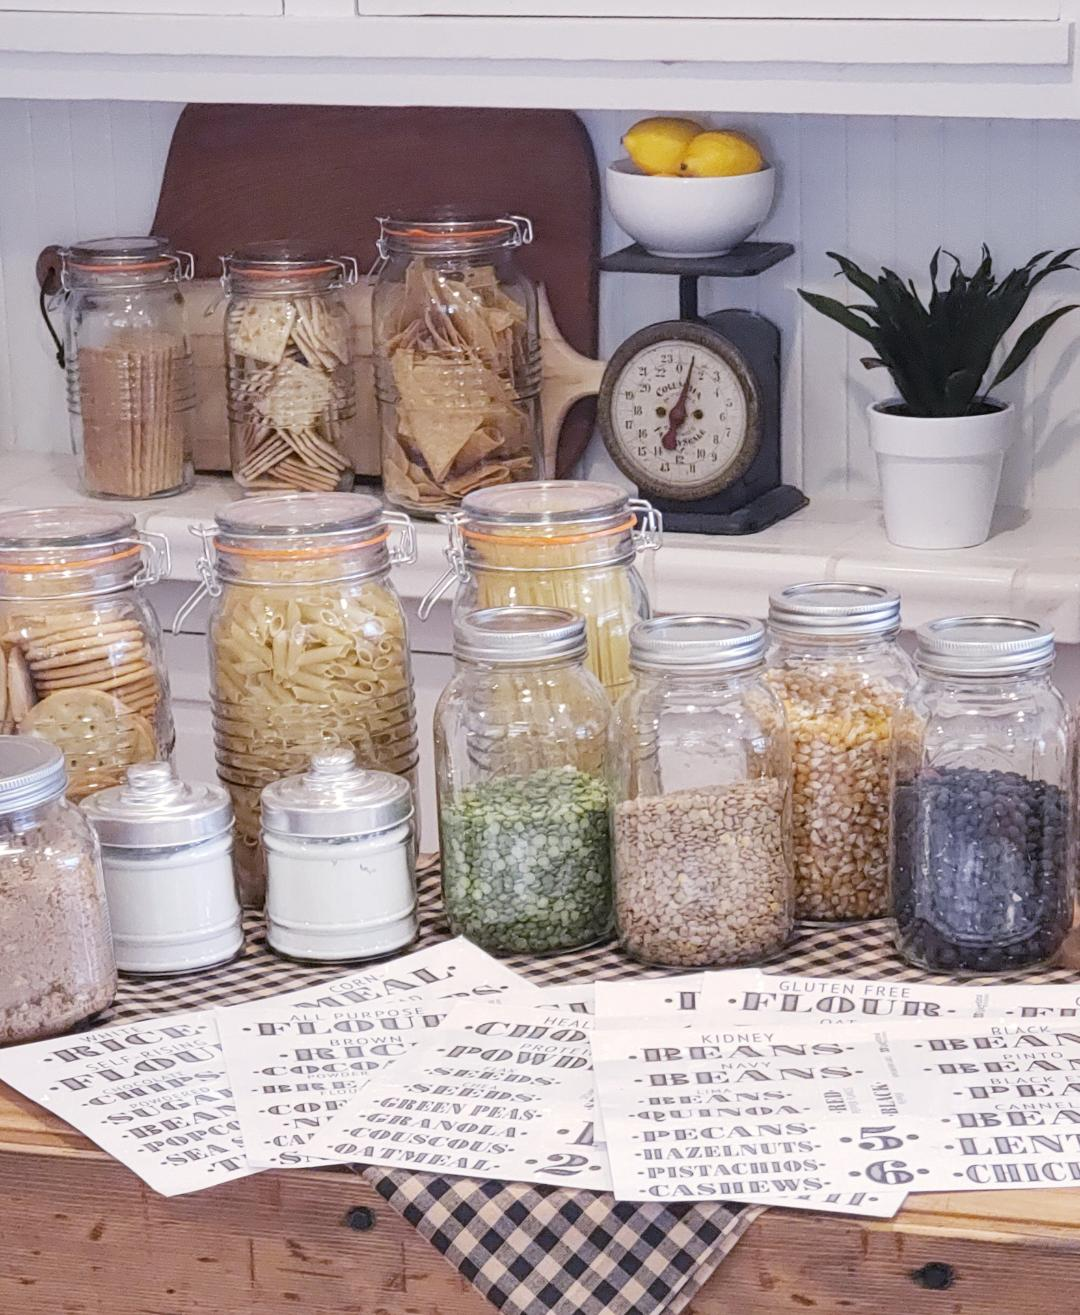 pantry staples in jars with farmhouse pantry labels